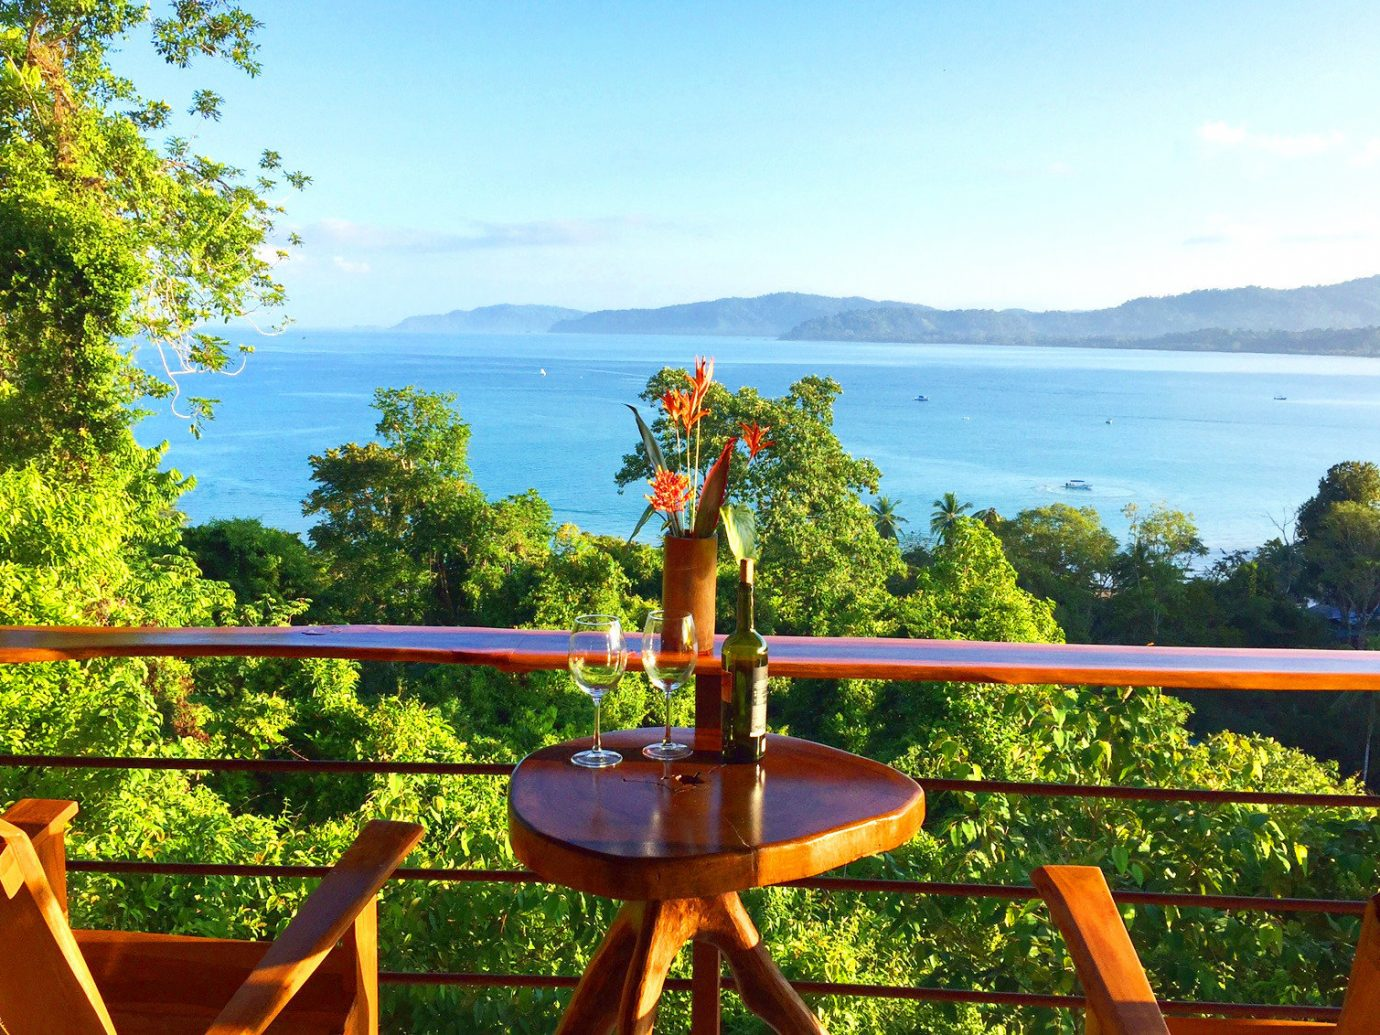 View from Drake Bay Getaway Resort on the Osa Peninsula in Costa Rica